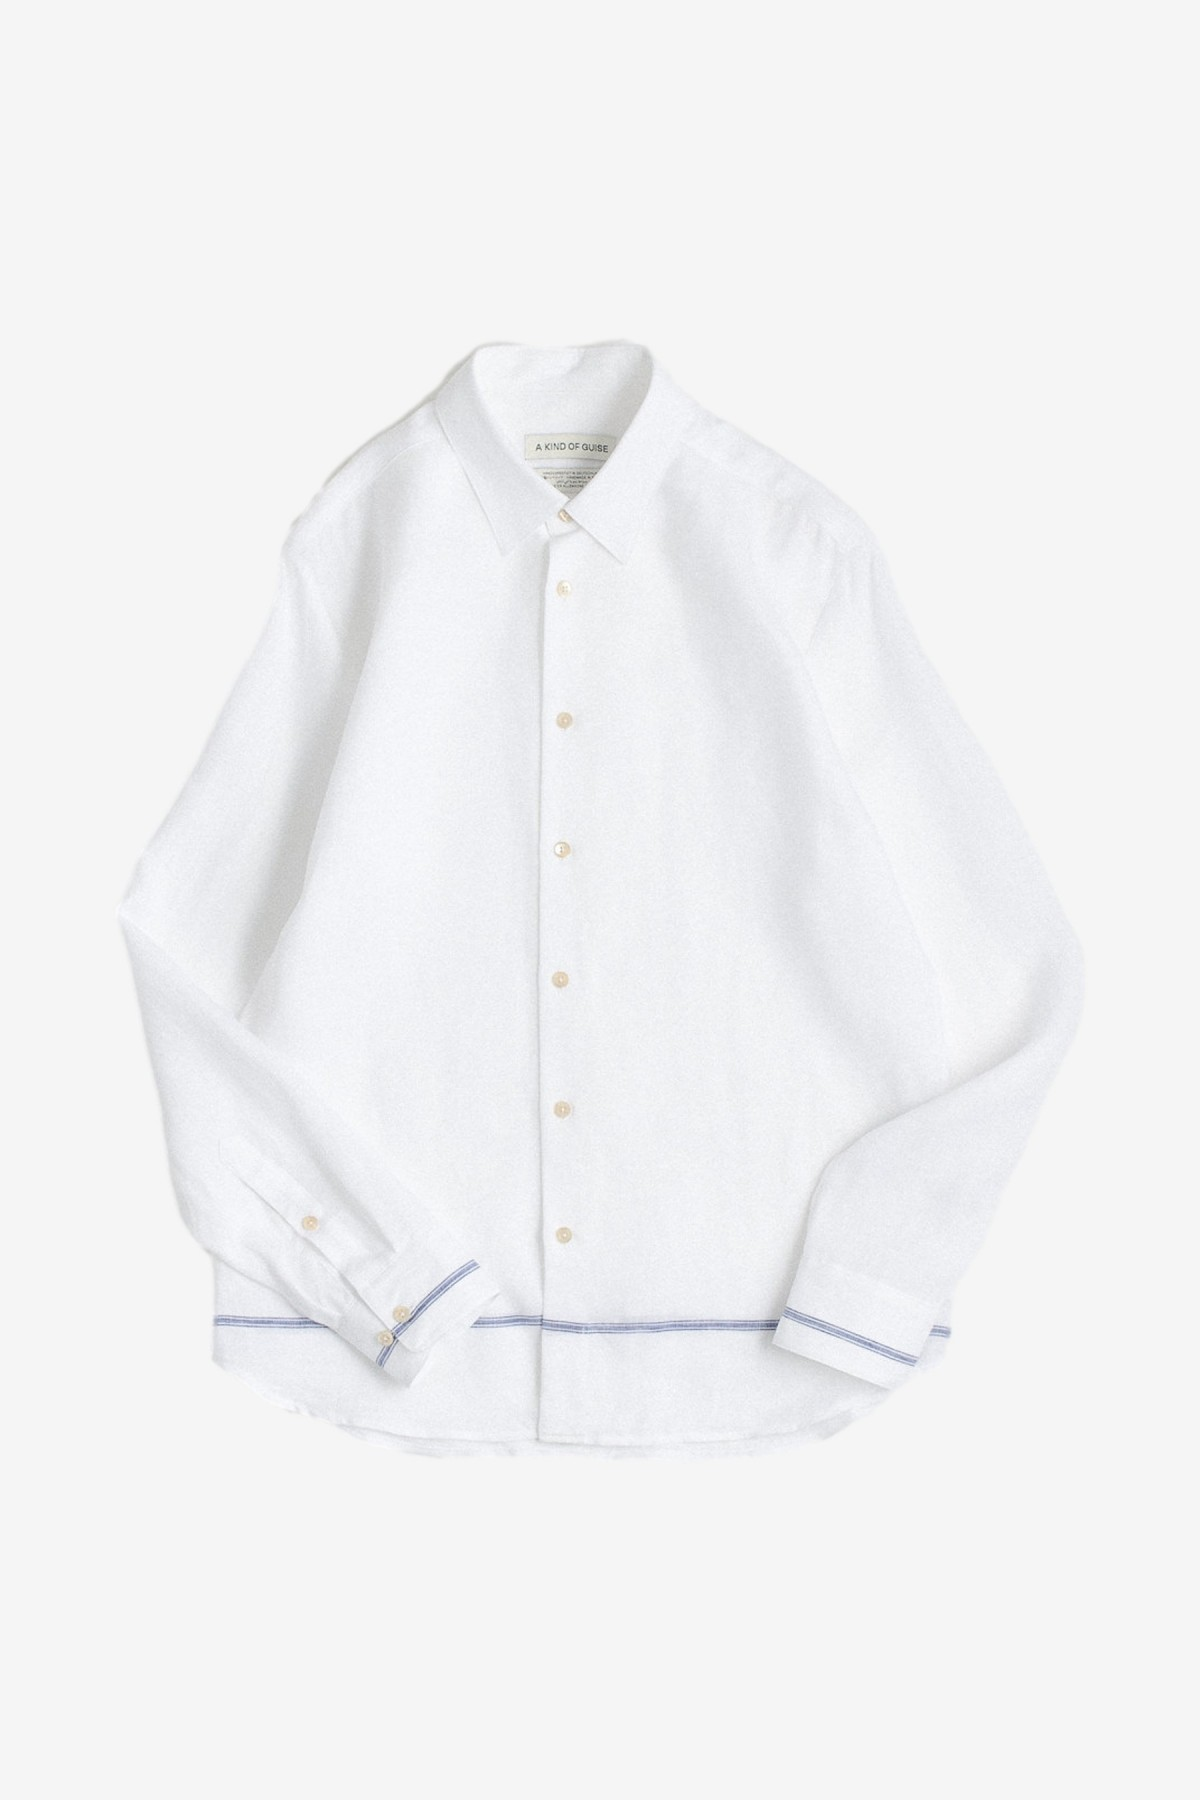 A Kind of Guise Flores Shirt in White Taverna